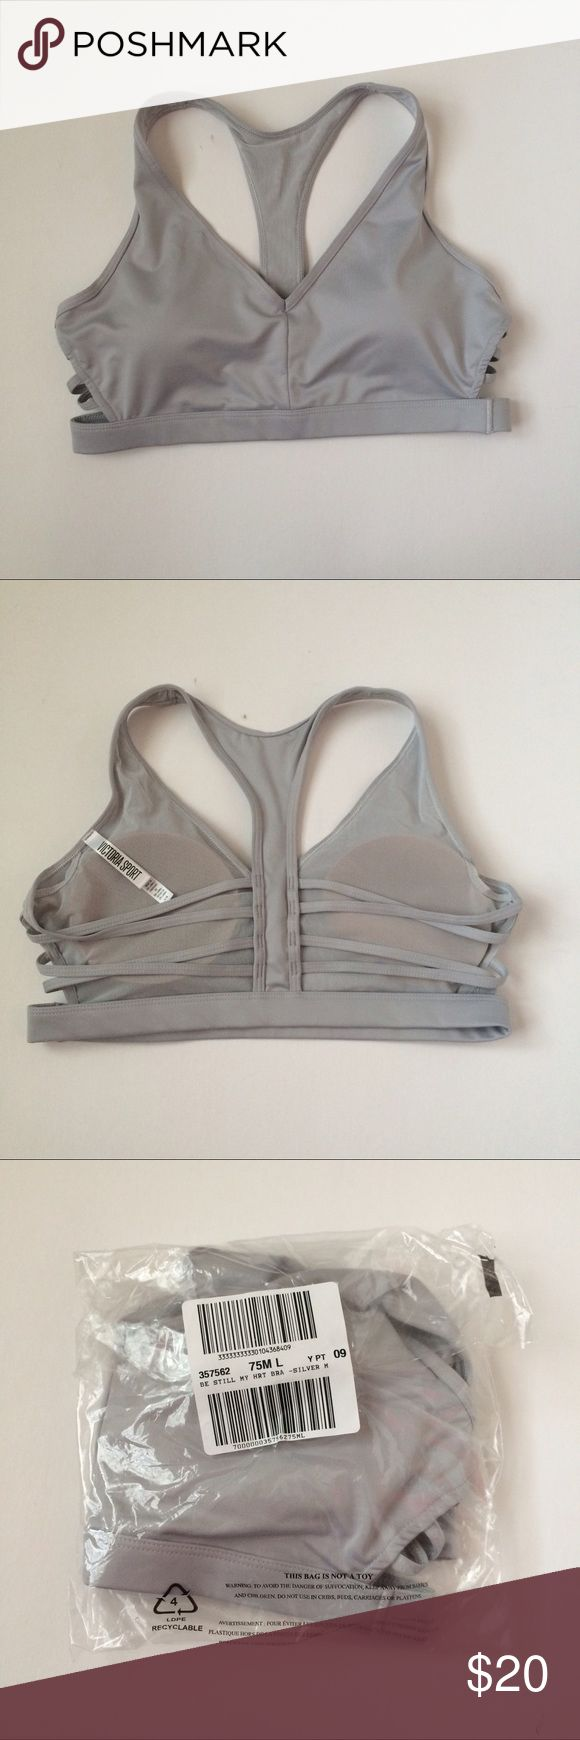 🆕(M) VS Sports Bra NWT Victoria's Secret Caged Racerback Sports Bra in silver, size medium. You need this sexy, strappy, iridescent sports bra in your life! Removable pads, minimum support, cute for the gym or for running errands! My favorite of Victoria's Secret's sports bras. Bundle and save today 💕 Victoria's Secret Intimates & Sleepwear Bras